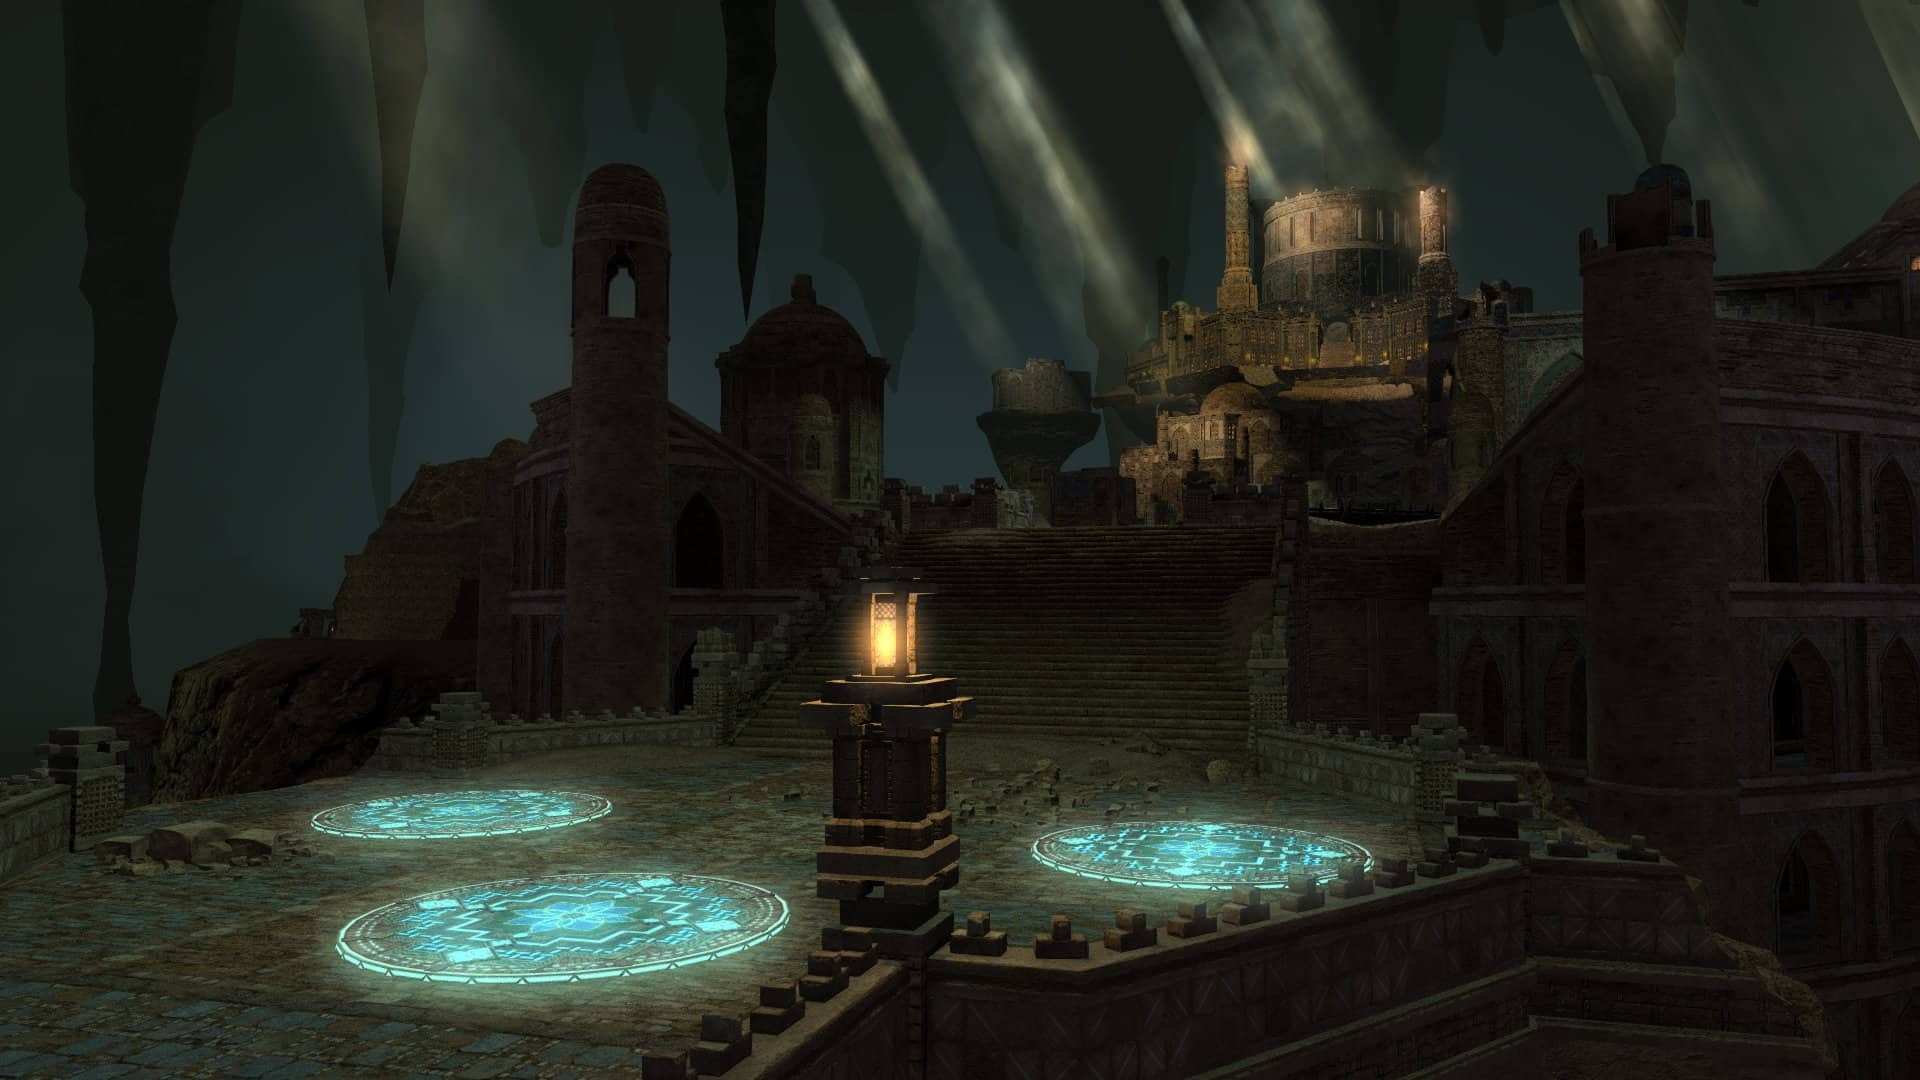 Final Fantasy XIV Patch 5.45 Updates Bozjan Southern Front And The Blue Mage Class